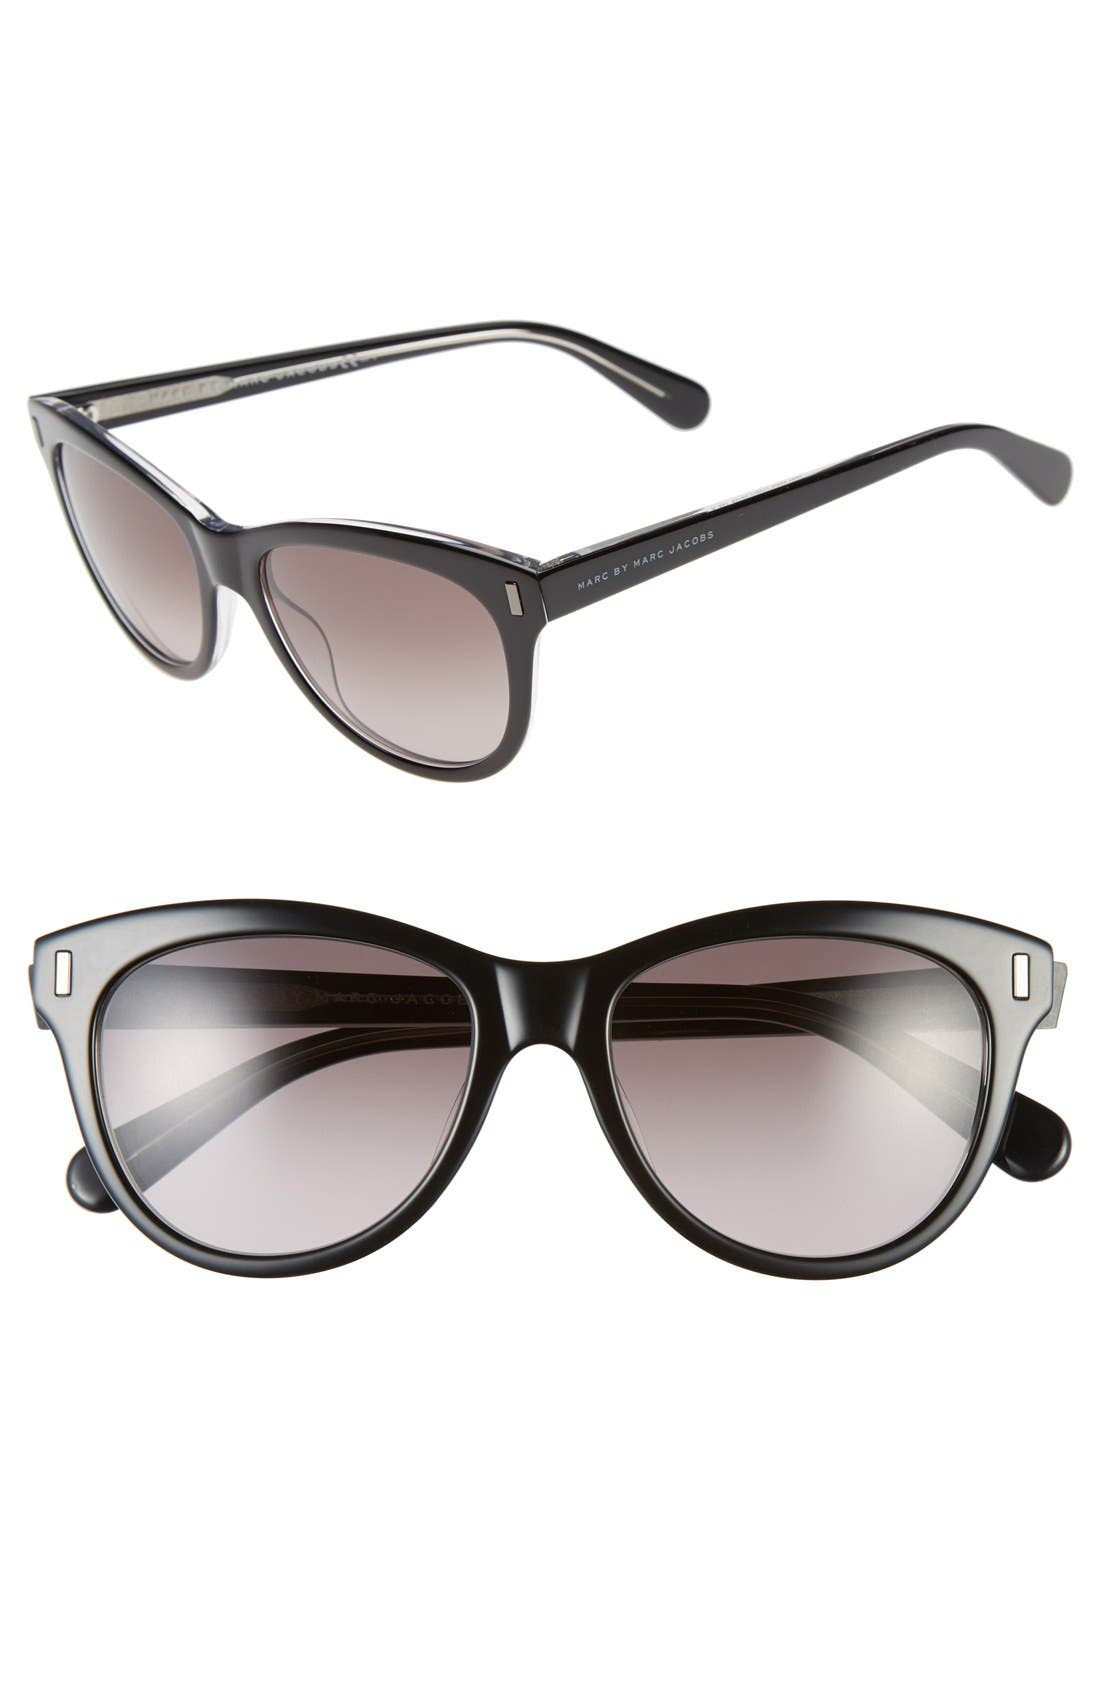 Main Image - MARC BY MARC JACOBS 53mm Retro Sunglasses